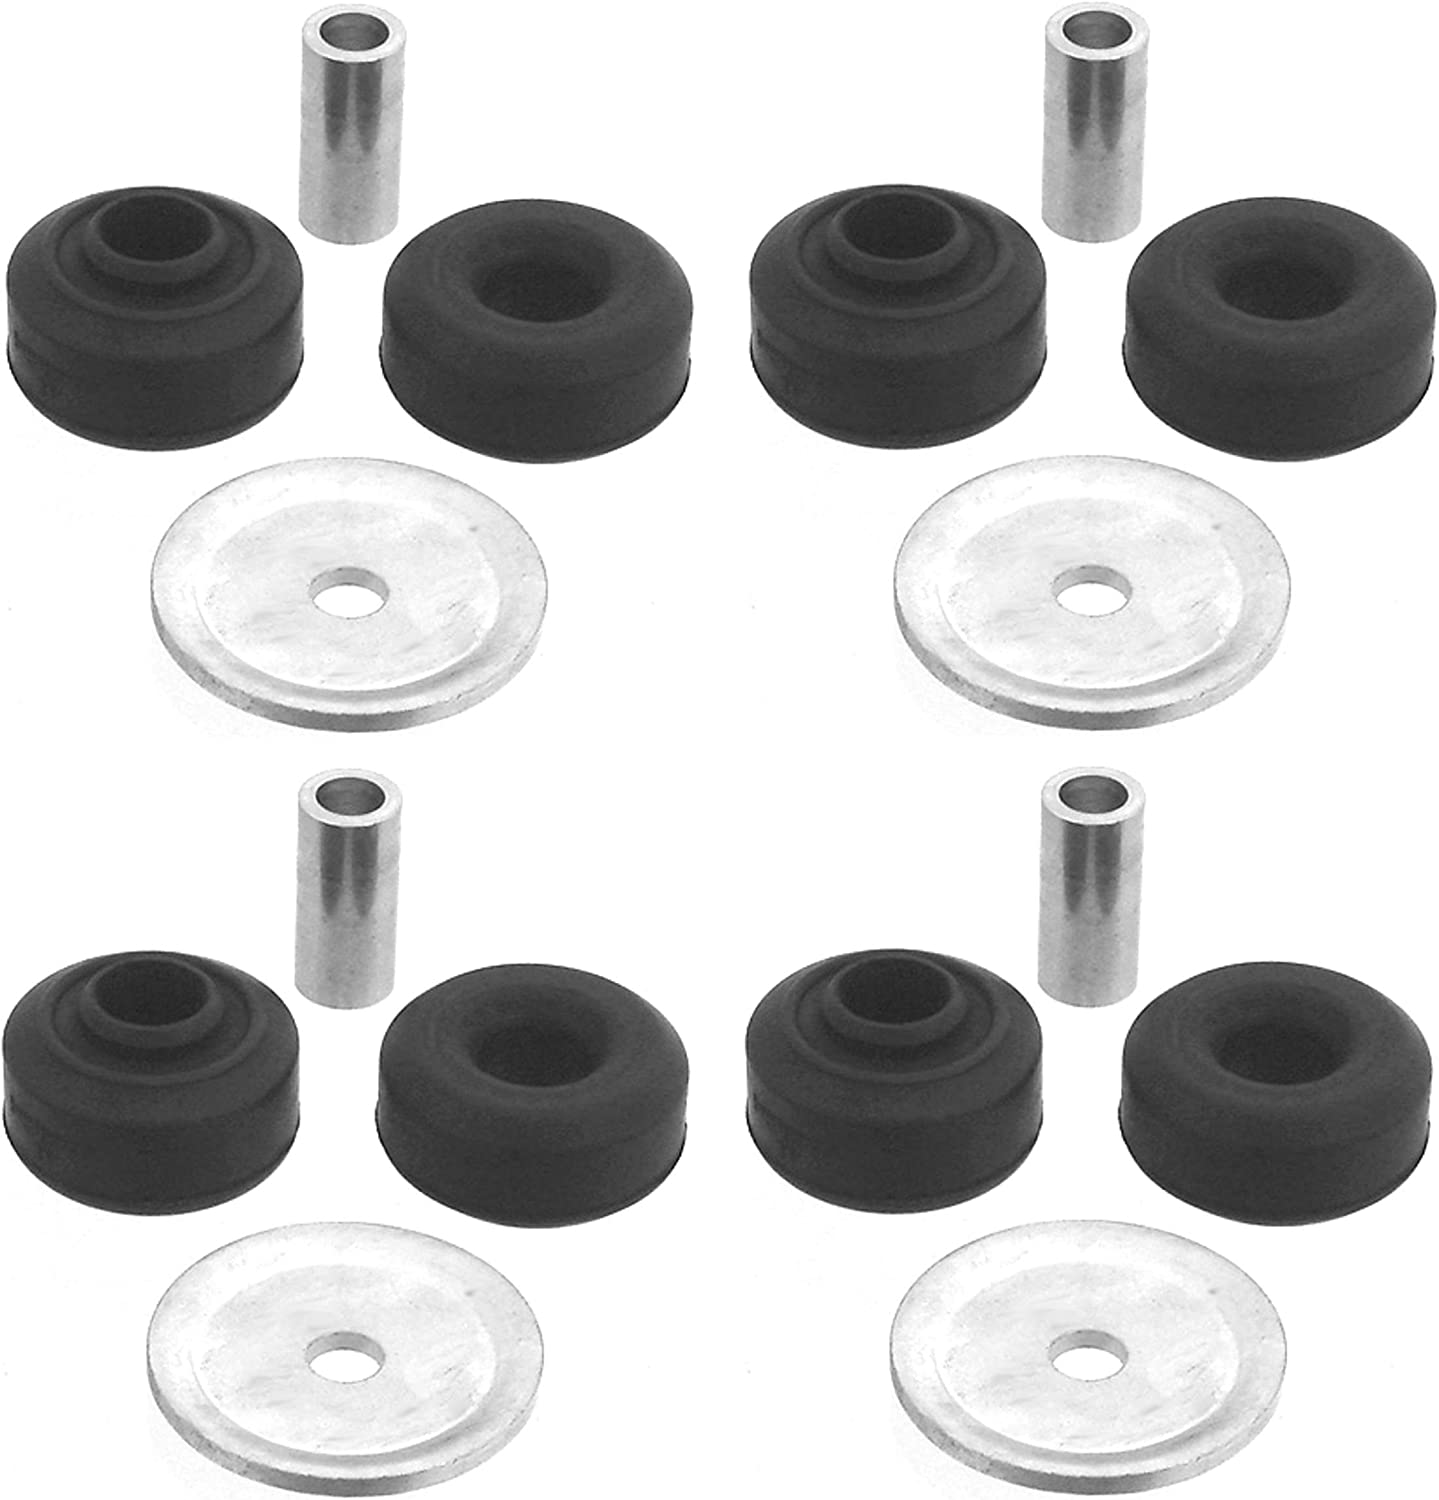 NEW Front and Rear Suspension Strut Mounts Kit KYB For Mazda MX-5 Miata RX-8